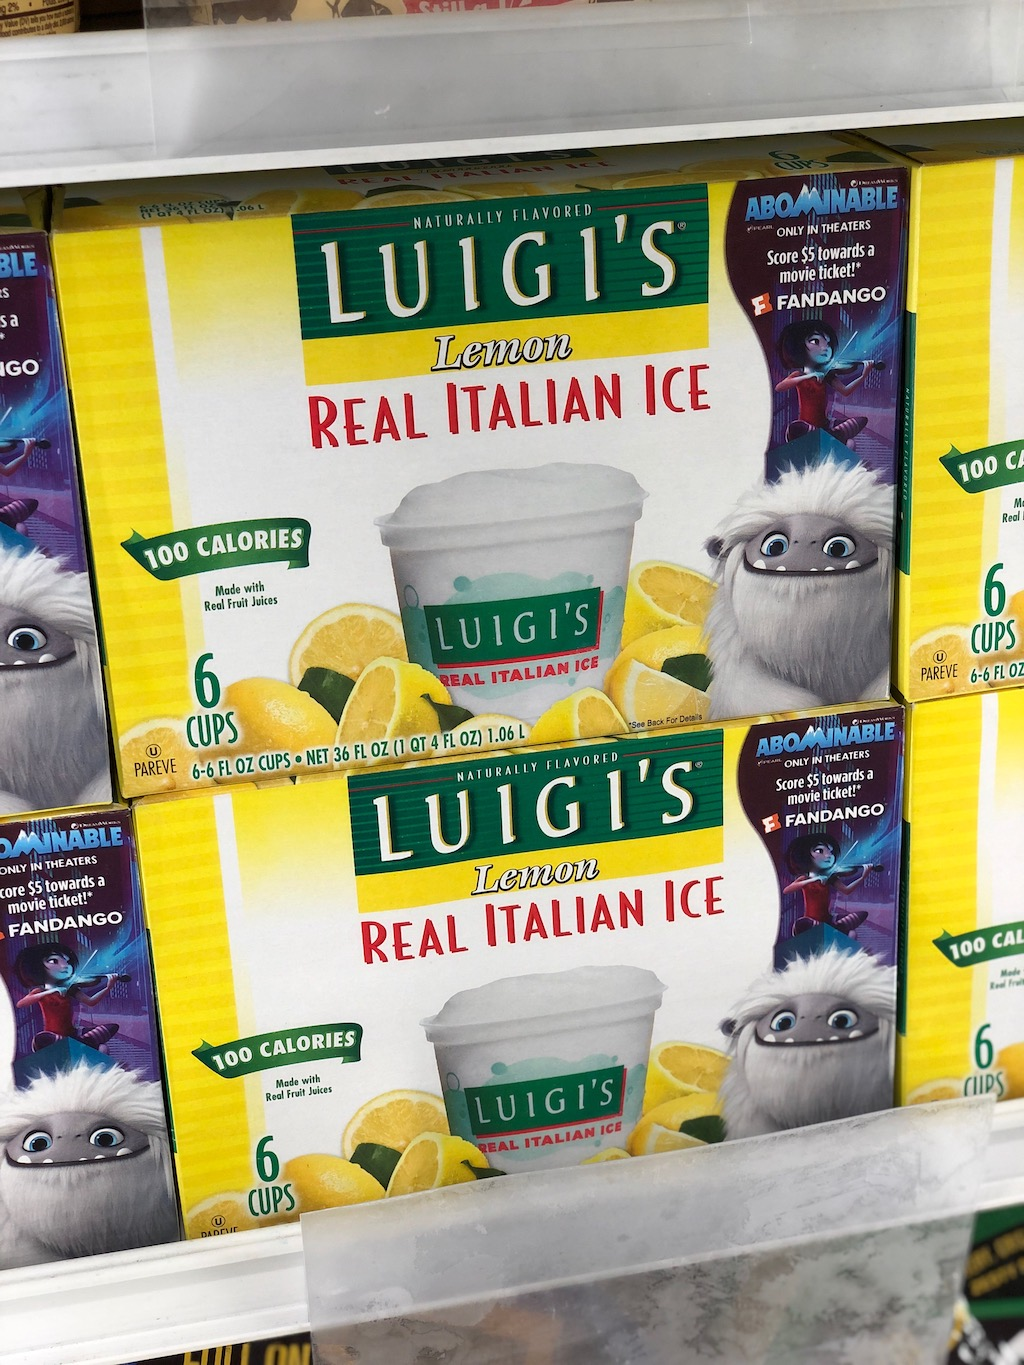 LUIGI'S Real Italian Ice is teaming up with #AbominableMovie to bring sweet surprises this summer to help you save with a $.50 OFF coupon!